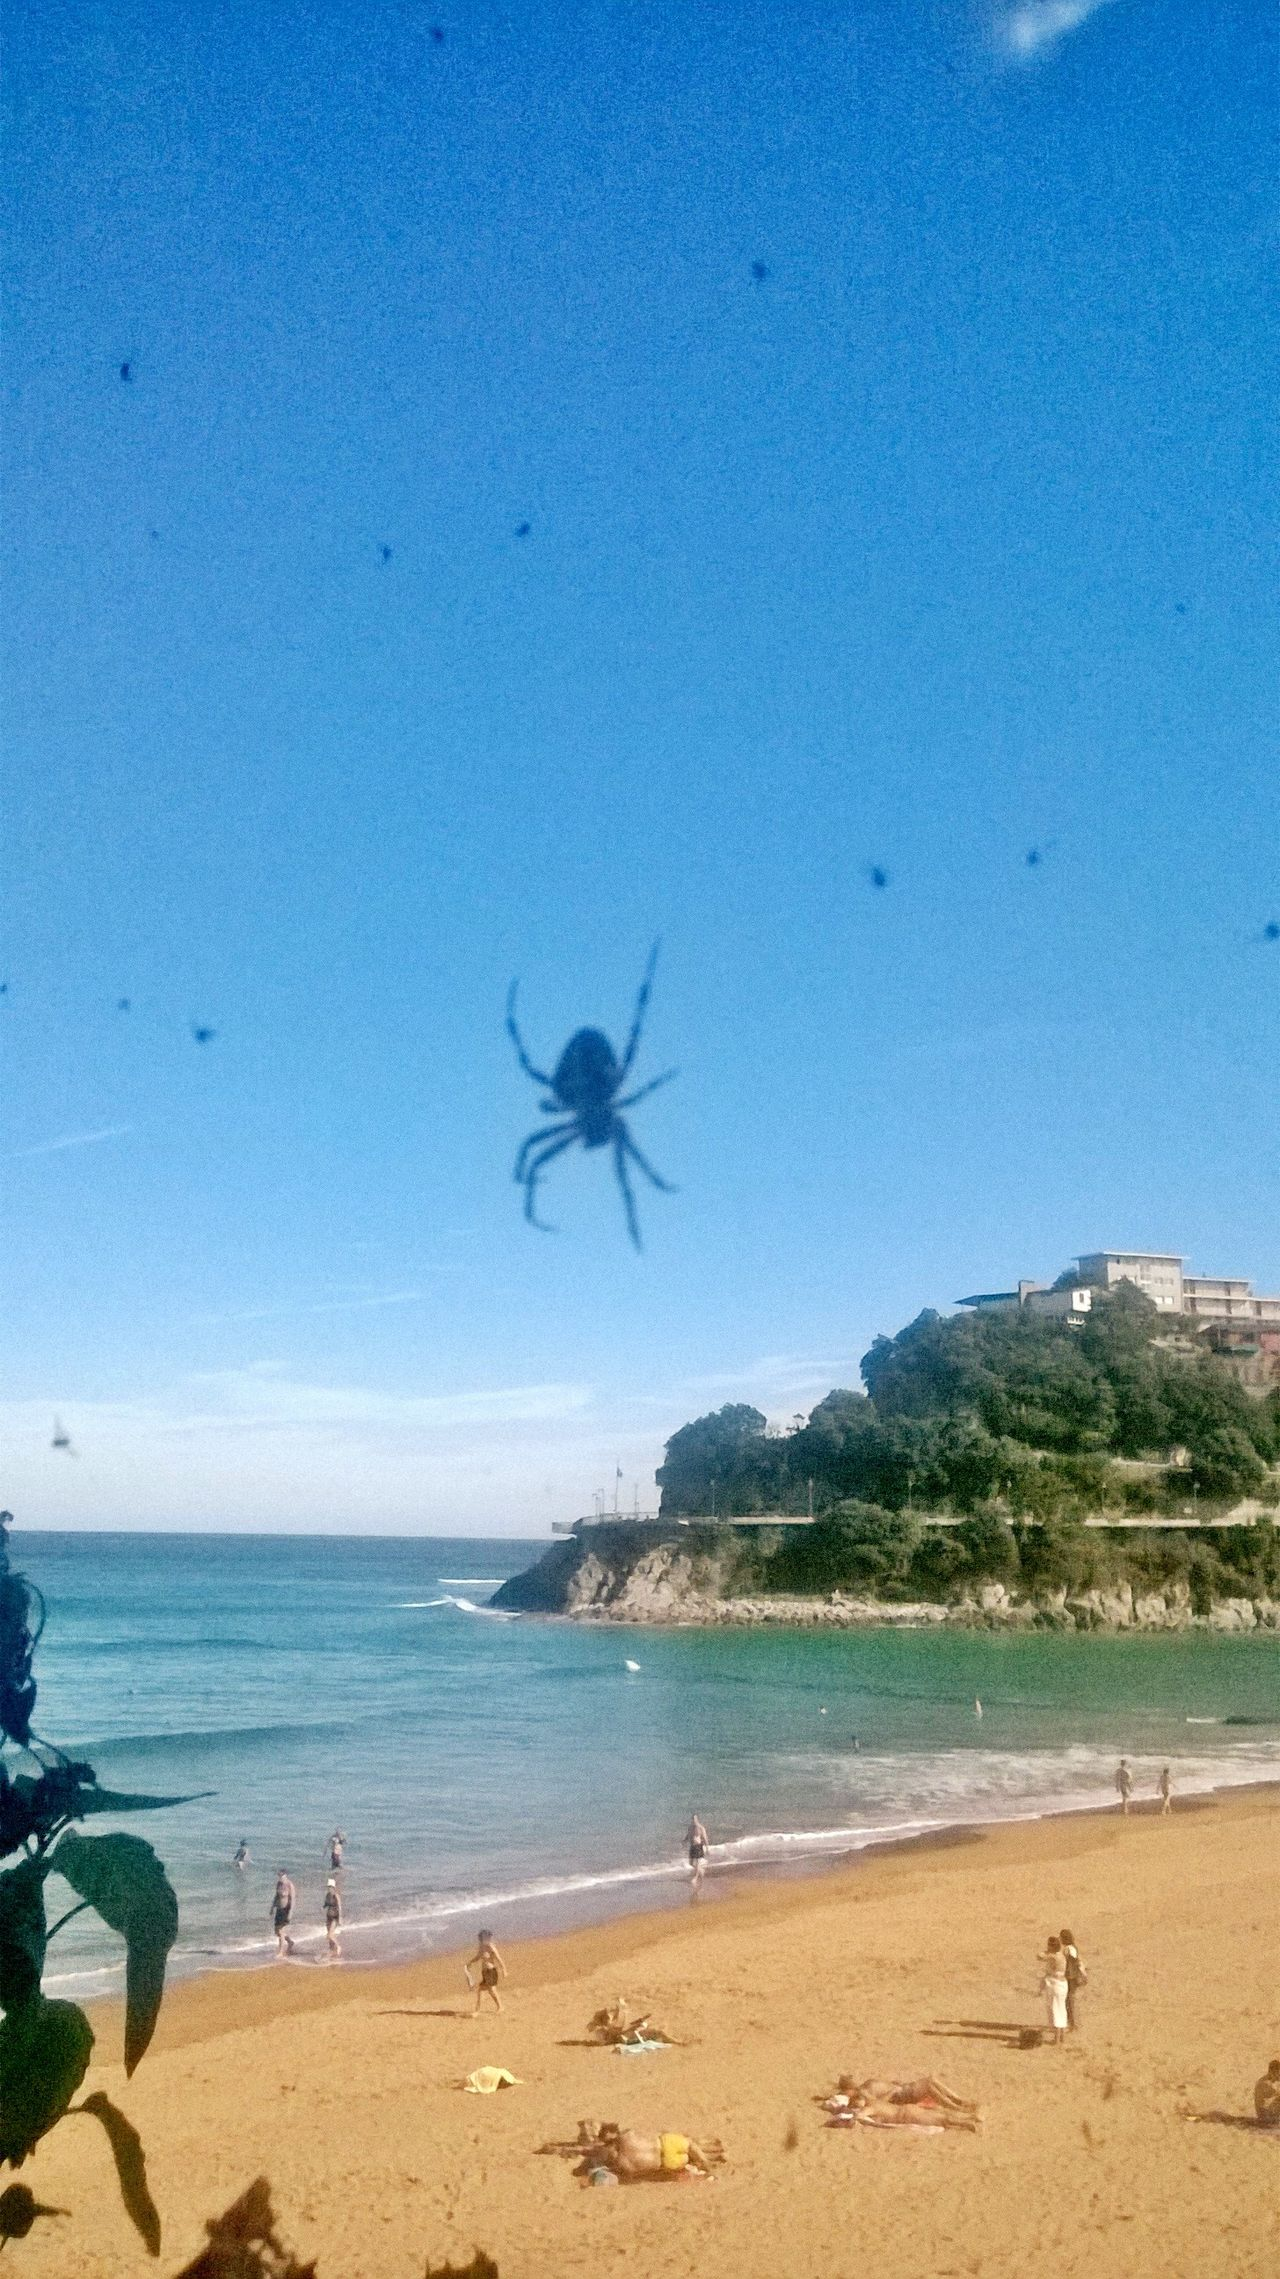 Blue Sea Beach Water Animal Themes Nature Day No People Eyem Collection Palm Tree Sky Outdoors Pueblos De España Beauty In Nature EyeEm EyeEmNewHereSpider Spider Invasion Lekitio Playa De Lekeitio Summer Verano Arachnophobia Traveling Home For The Holidays Adapted To The City